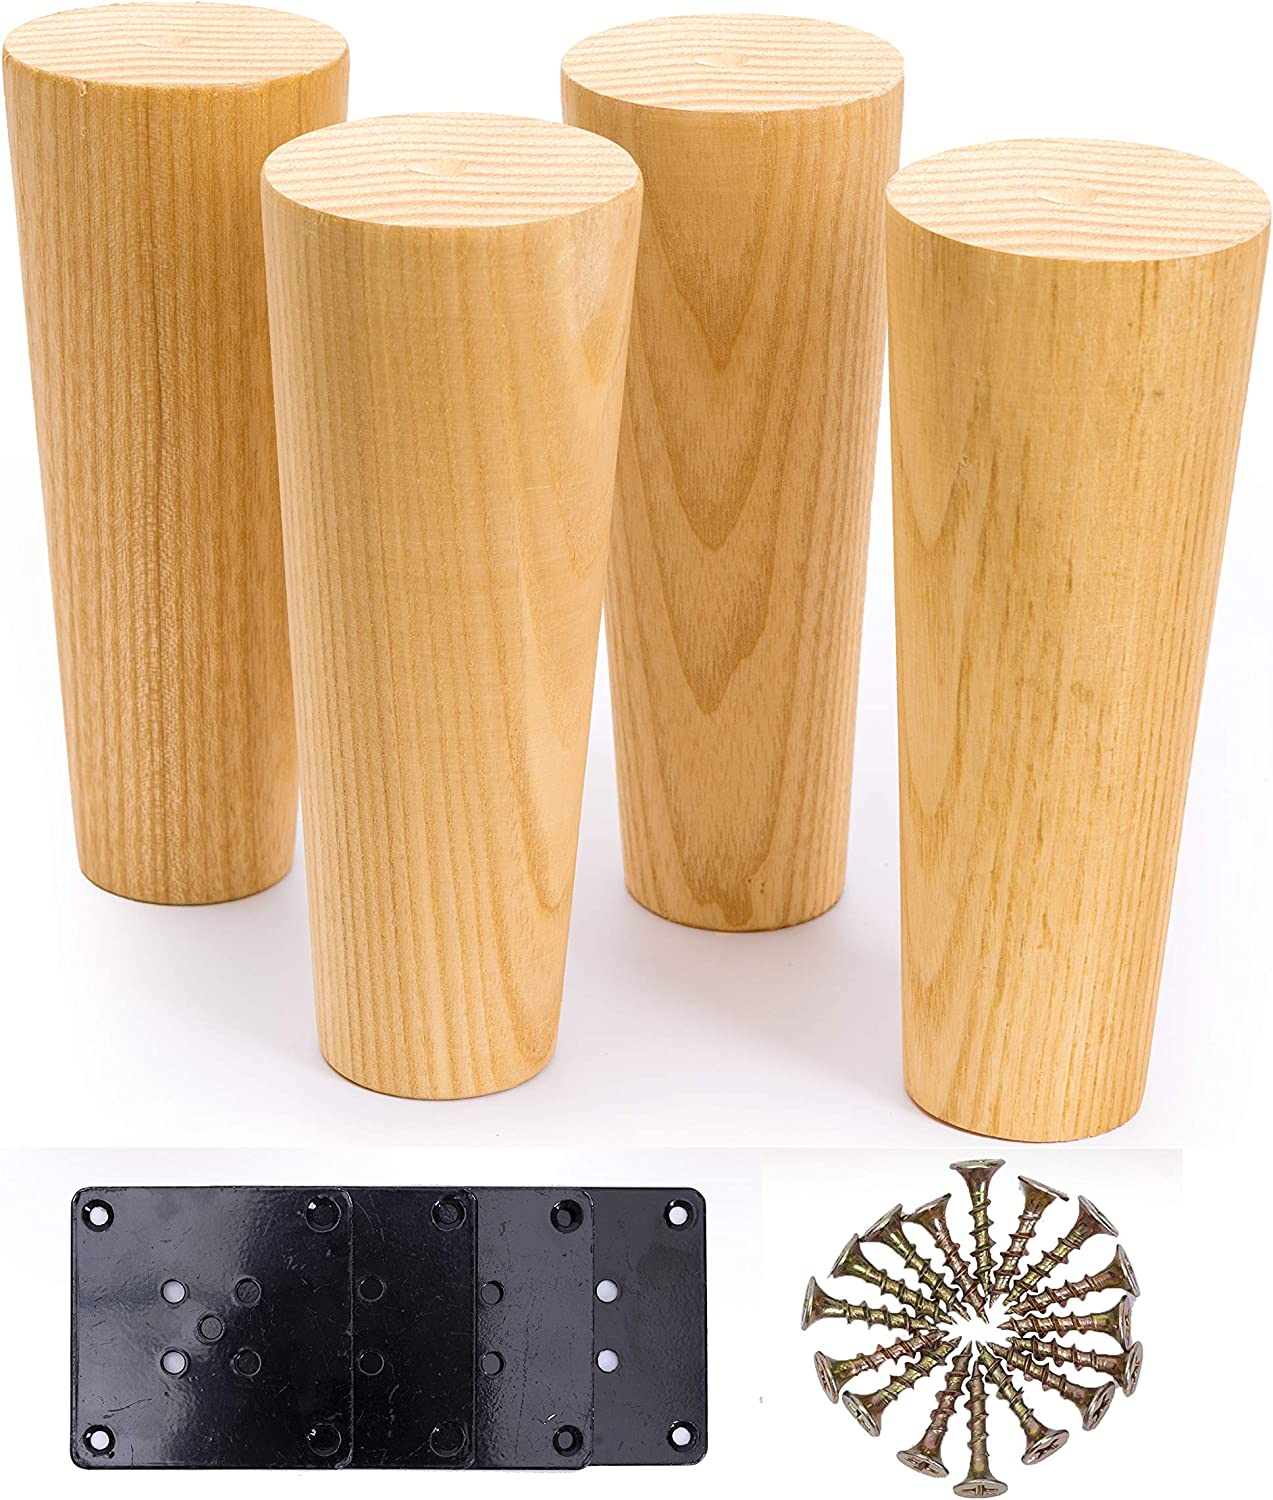 WOODINNO Furniture Leg Replacement for Sofa, Dresser, Cabinet, Couch,Otoman, Bed   Solid Wood Round Feet with Plate Hardware Set of 4 (6 Inch, Primer)